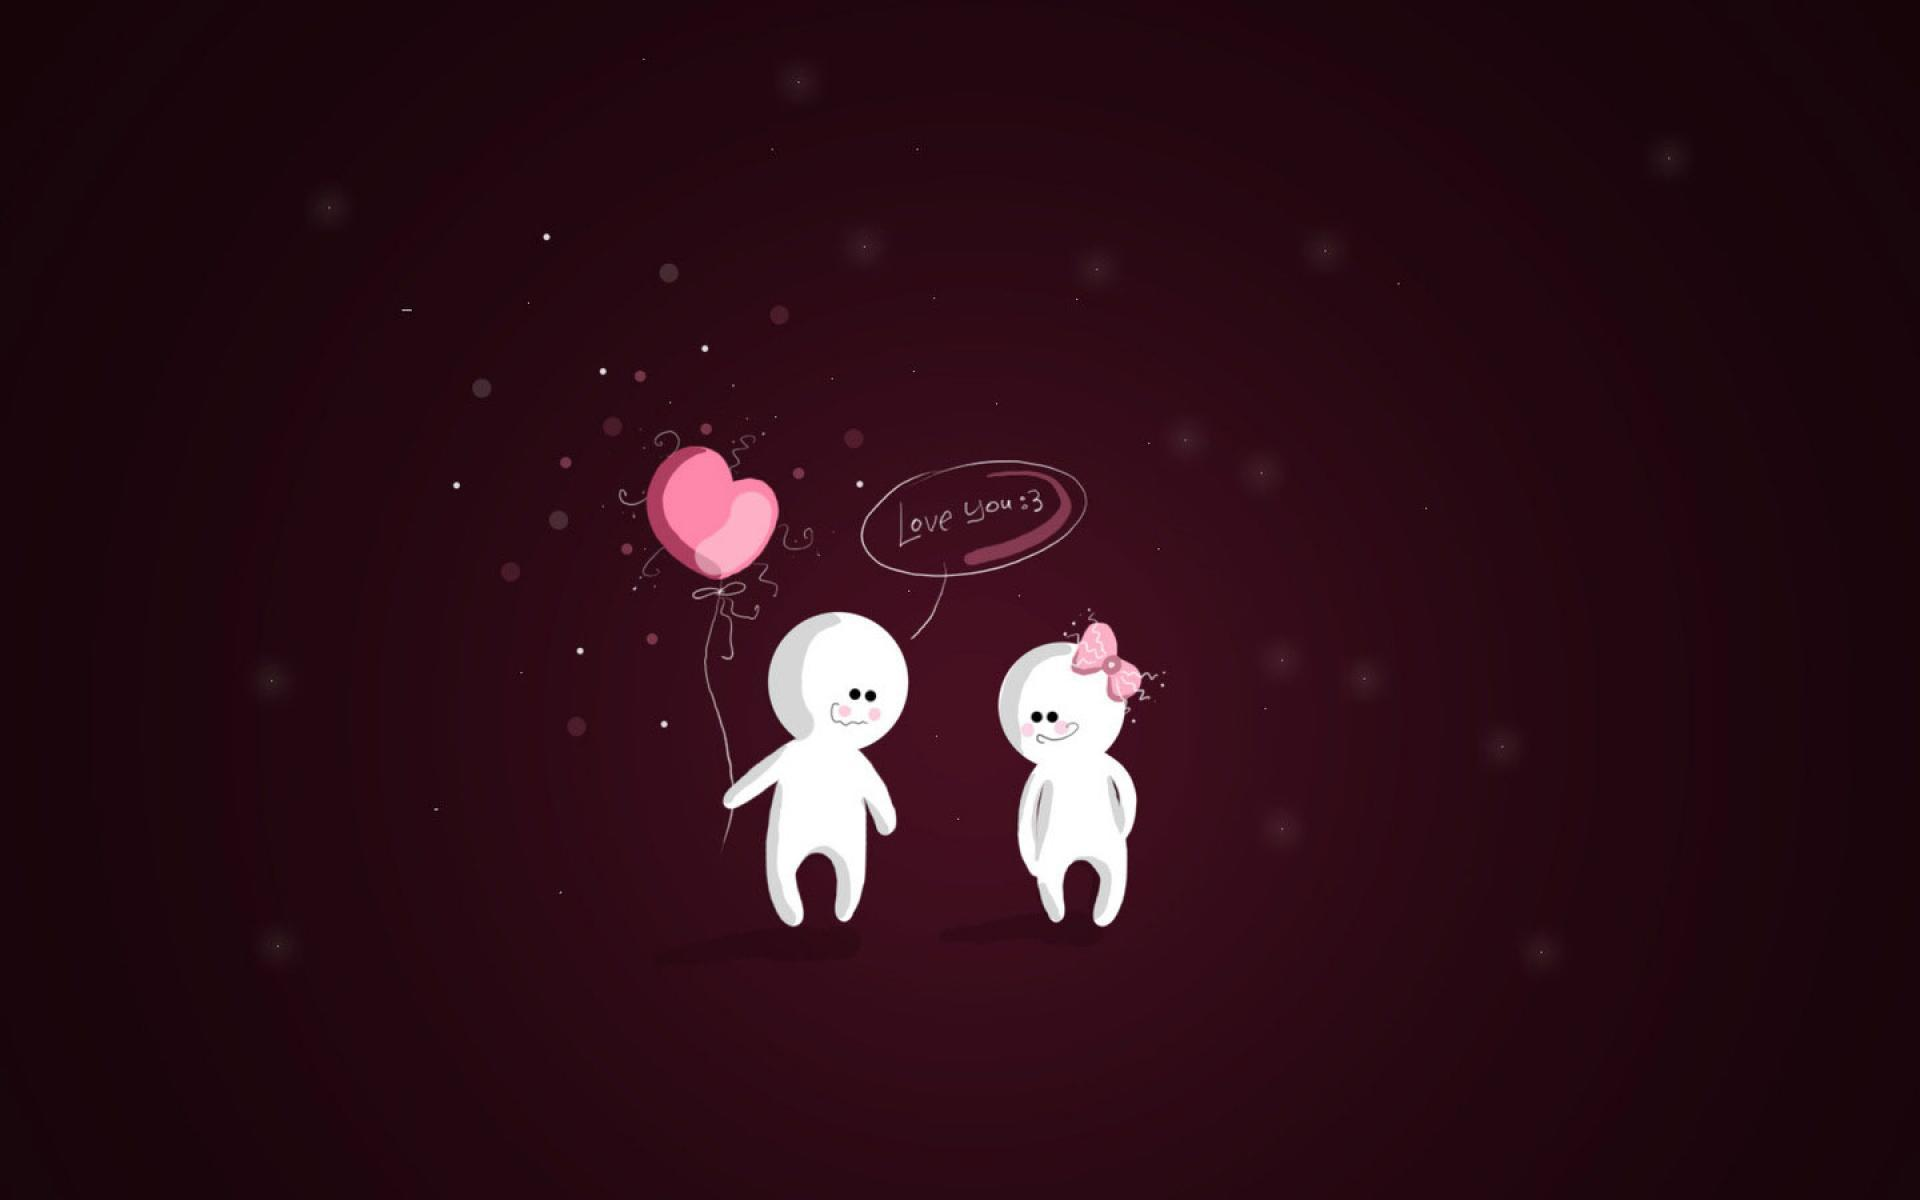 New Love cartoon Wallpaper : Love cartoon Wallpapers - Wallpaper cave